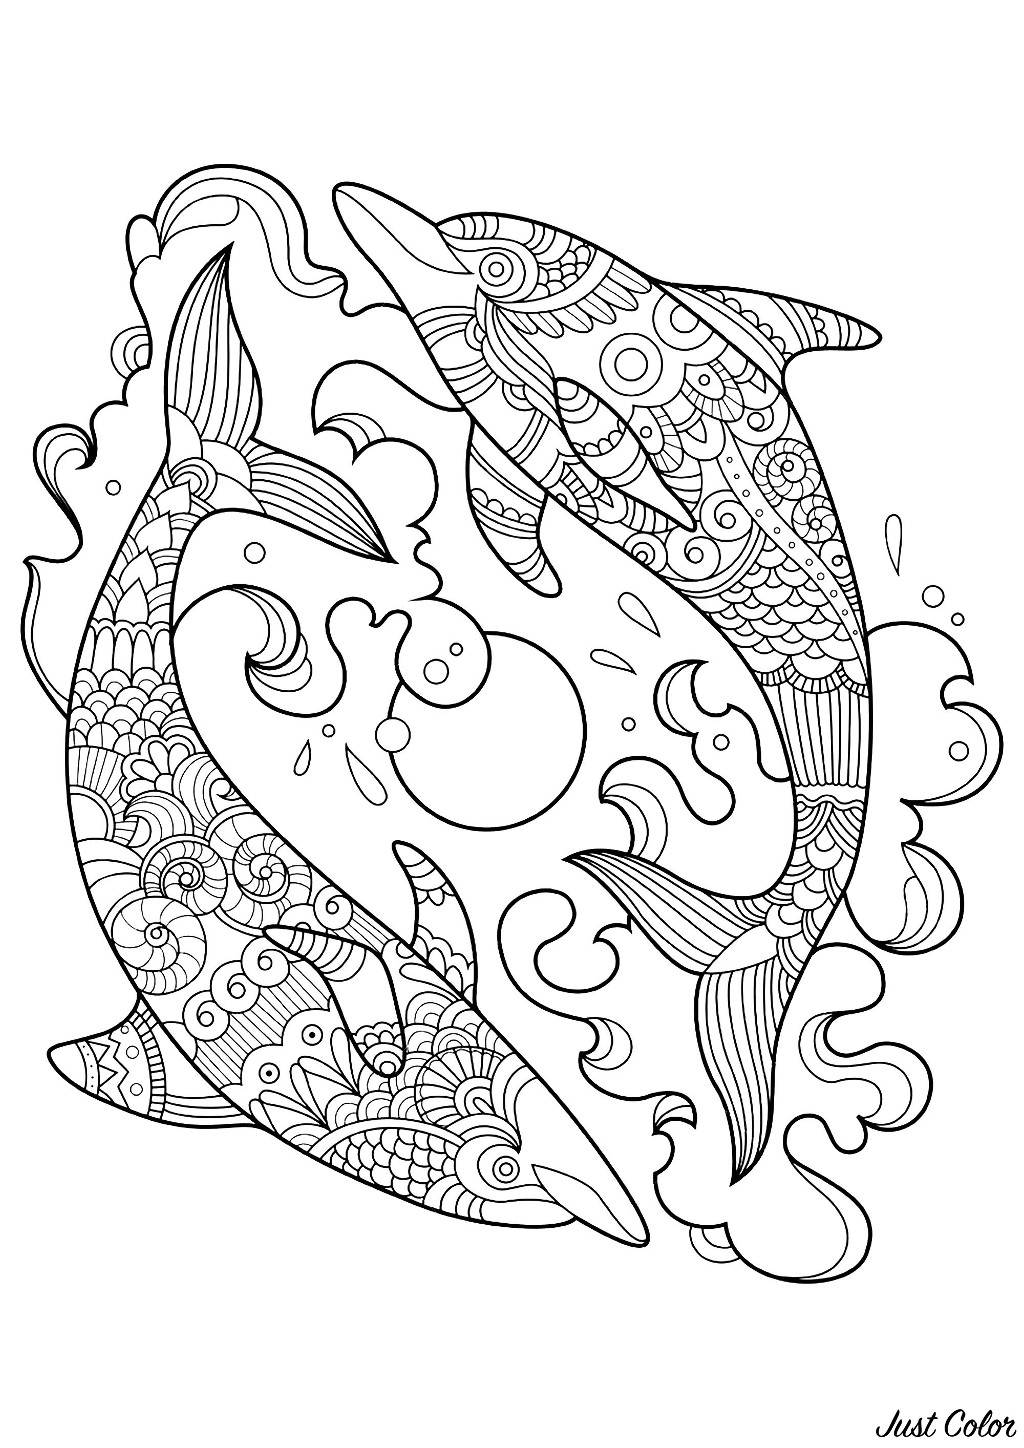 Dolphins to color for children - Dolphins Kids Coloring Pages